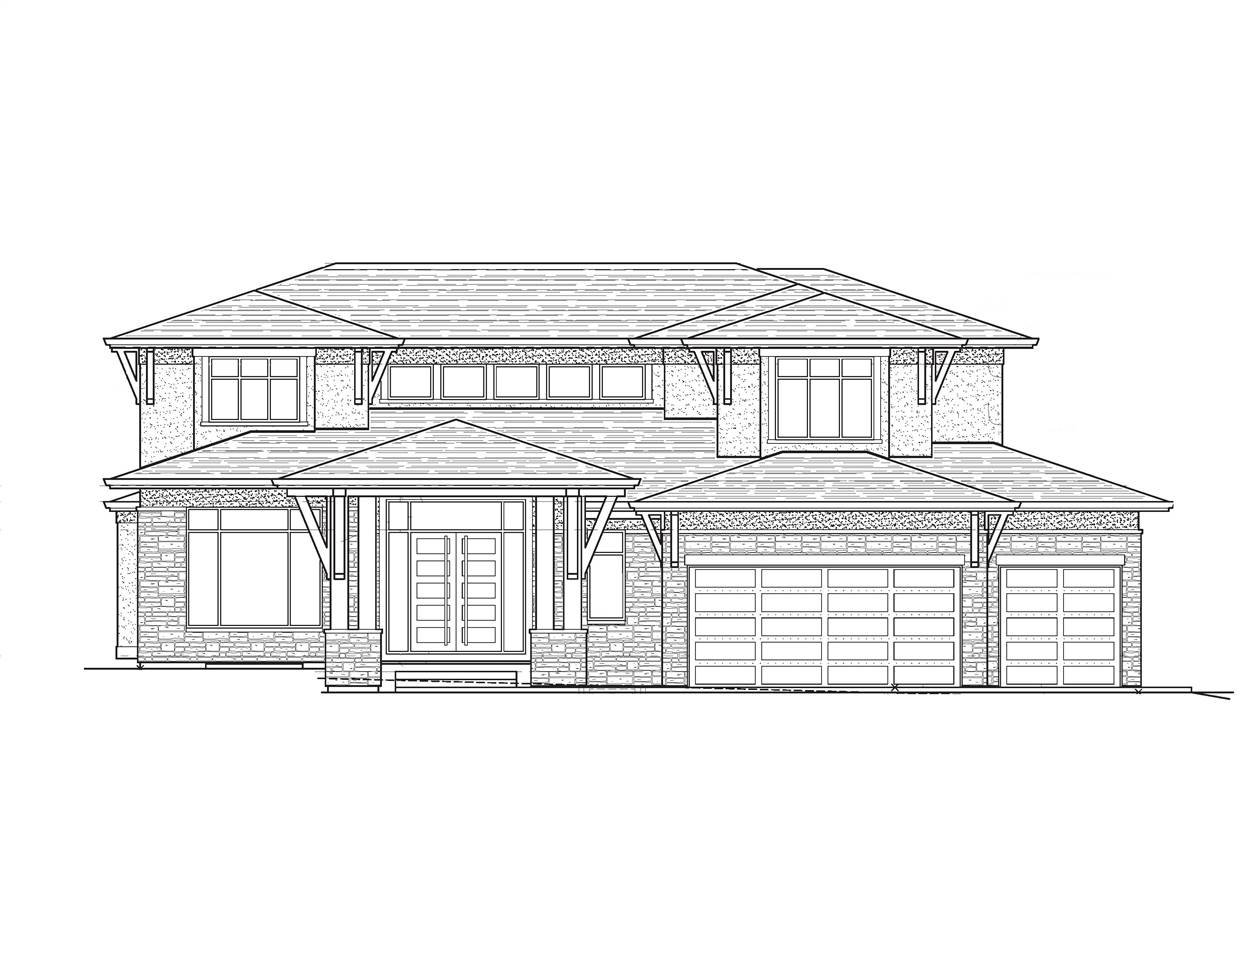 Main Photo: 5257 1 Avenue in Delta: Pebble Hill Land for sale (Tsawwassen)  : MLS®# R2469287